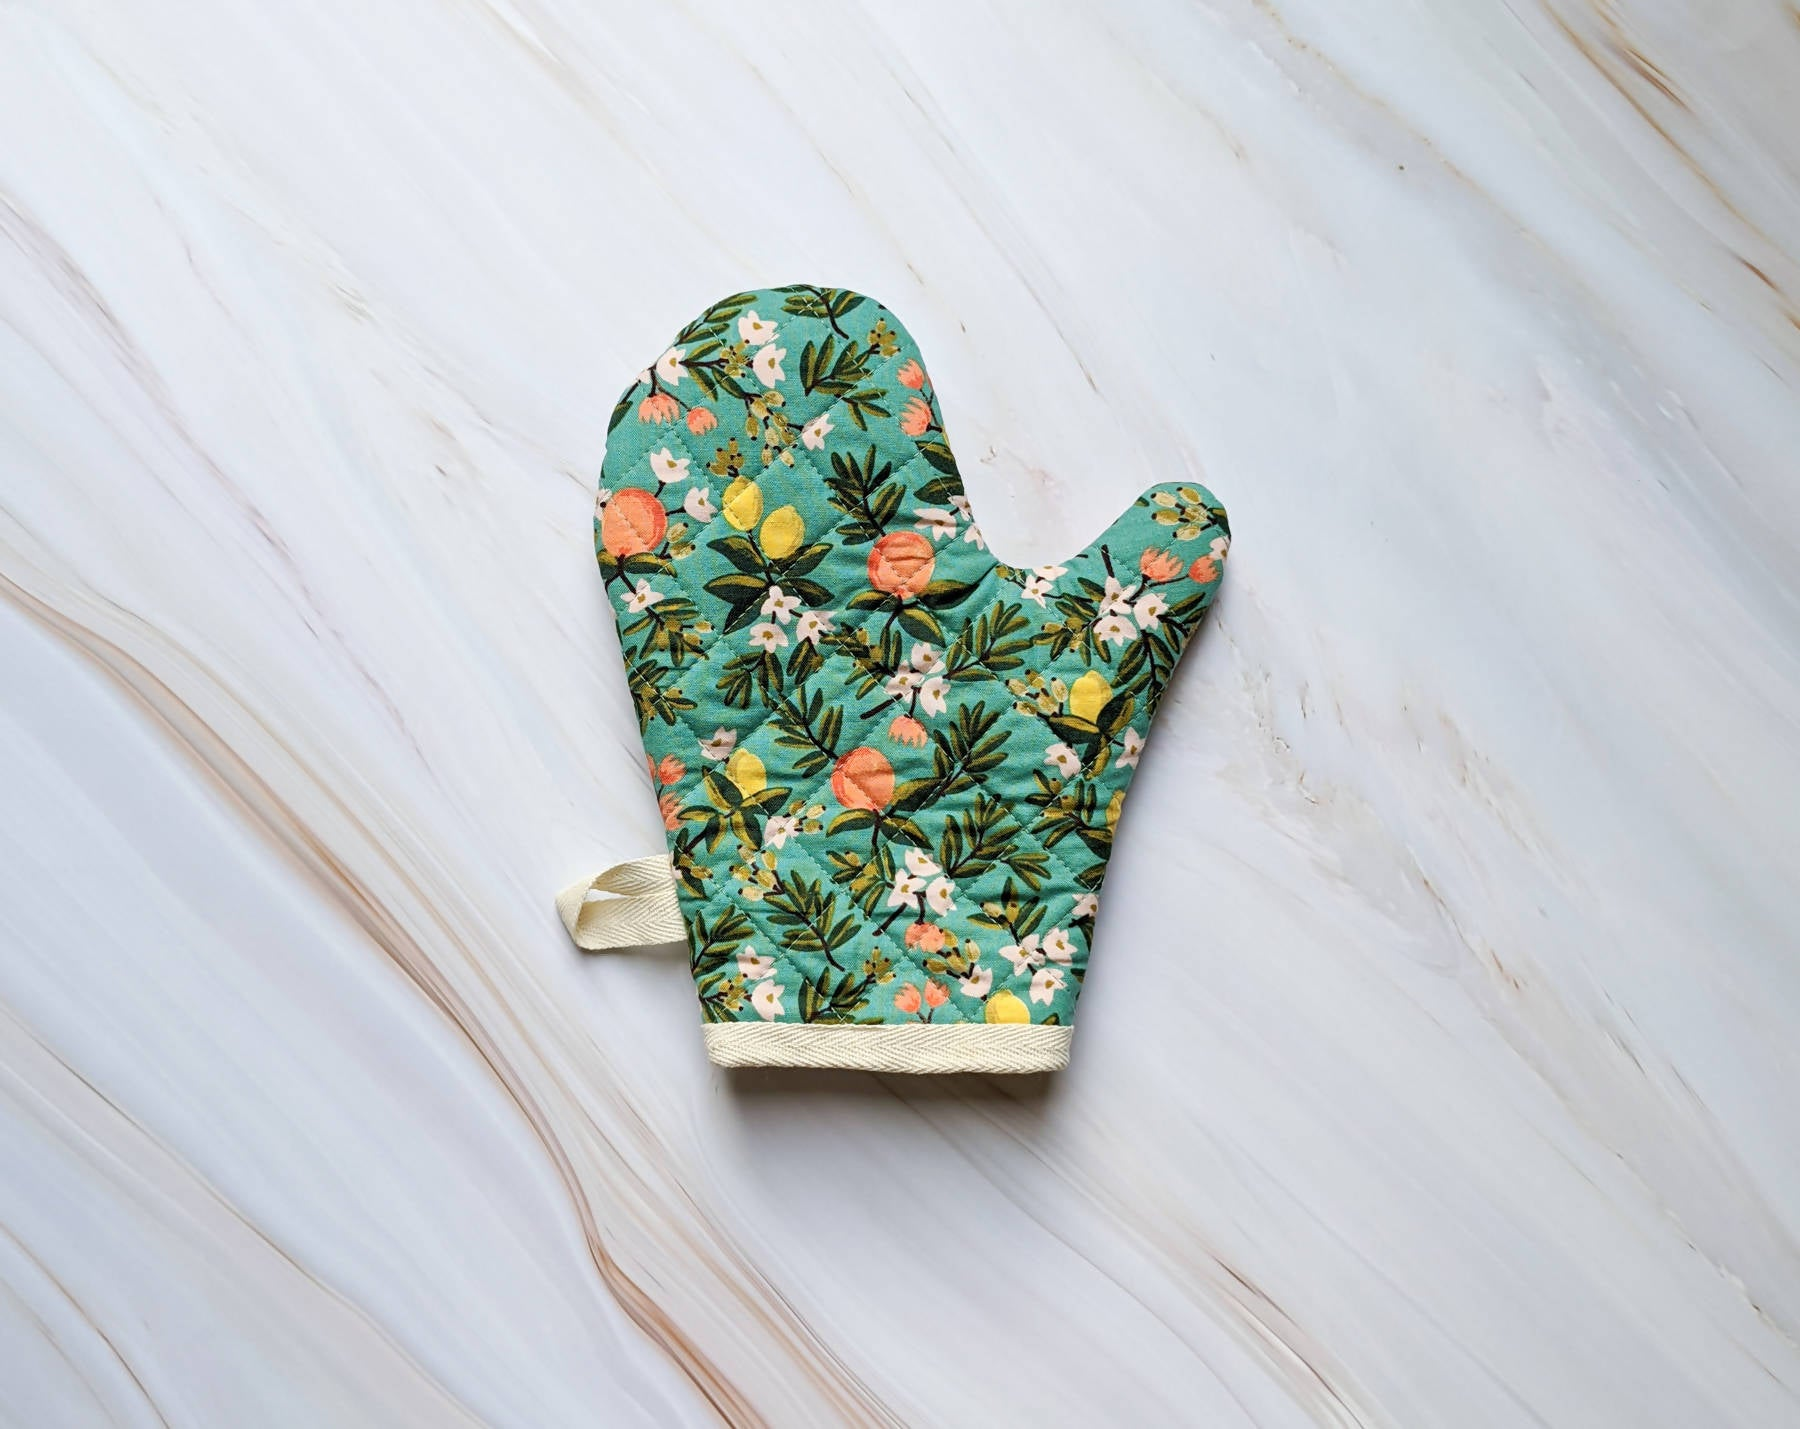 Citrus Teal Rifle Paper Co Oven Mitt